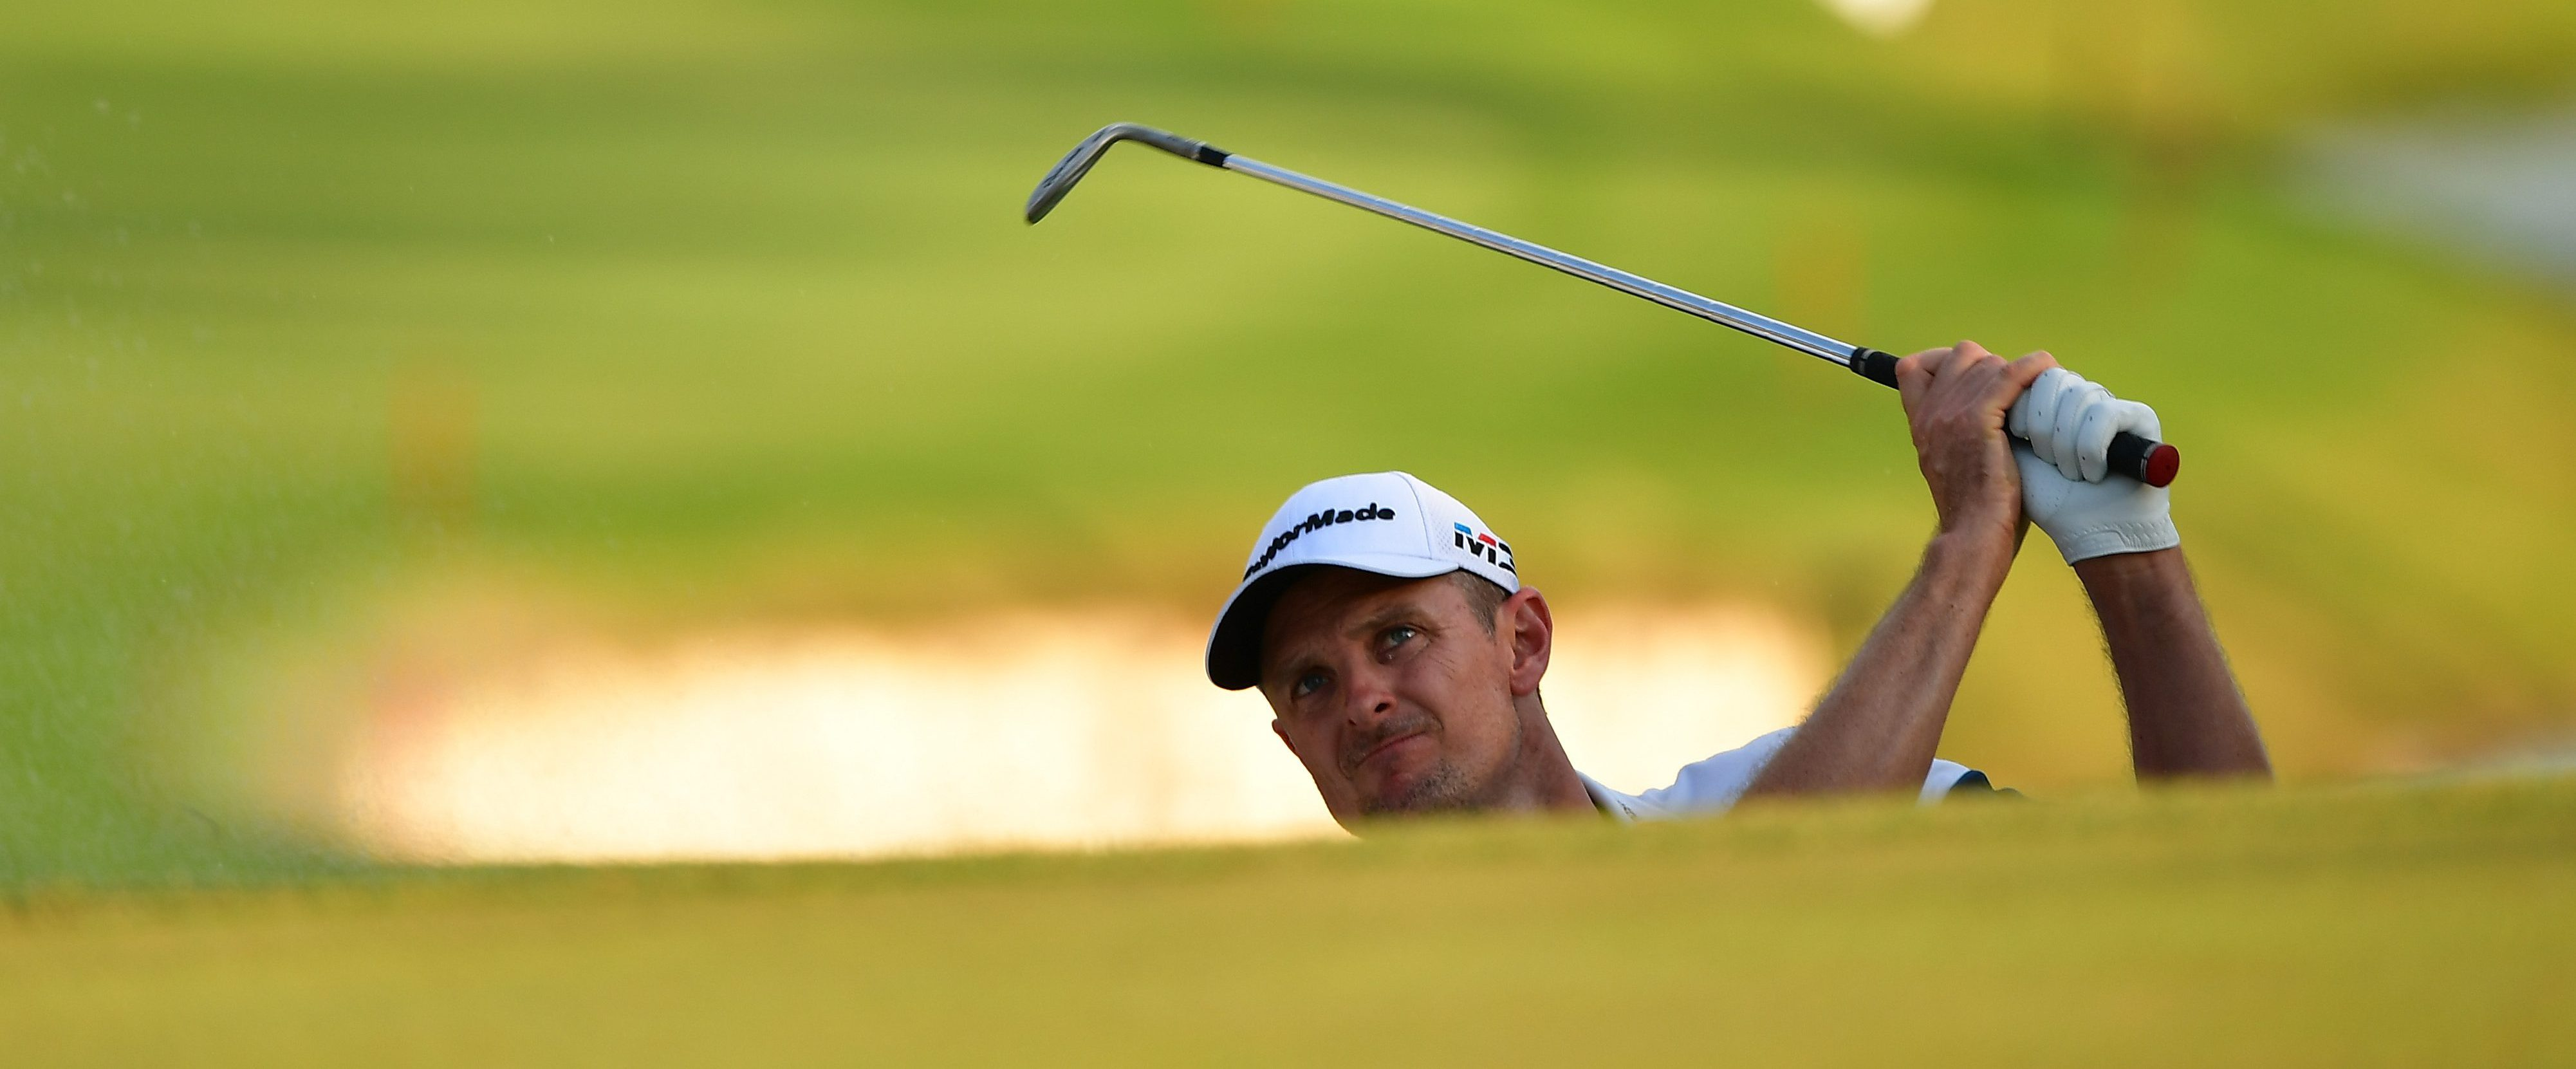 ANTALYA, TURKEY - NOVEMBER 04: Justin Rose of England plays a shot on the 18th hole during the final day of The Turkish Airlaines golf on November 4, 2018 in Antalya, Turkey. (Photo by Stuart Franklin/Getty Images)